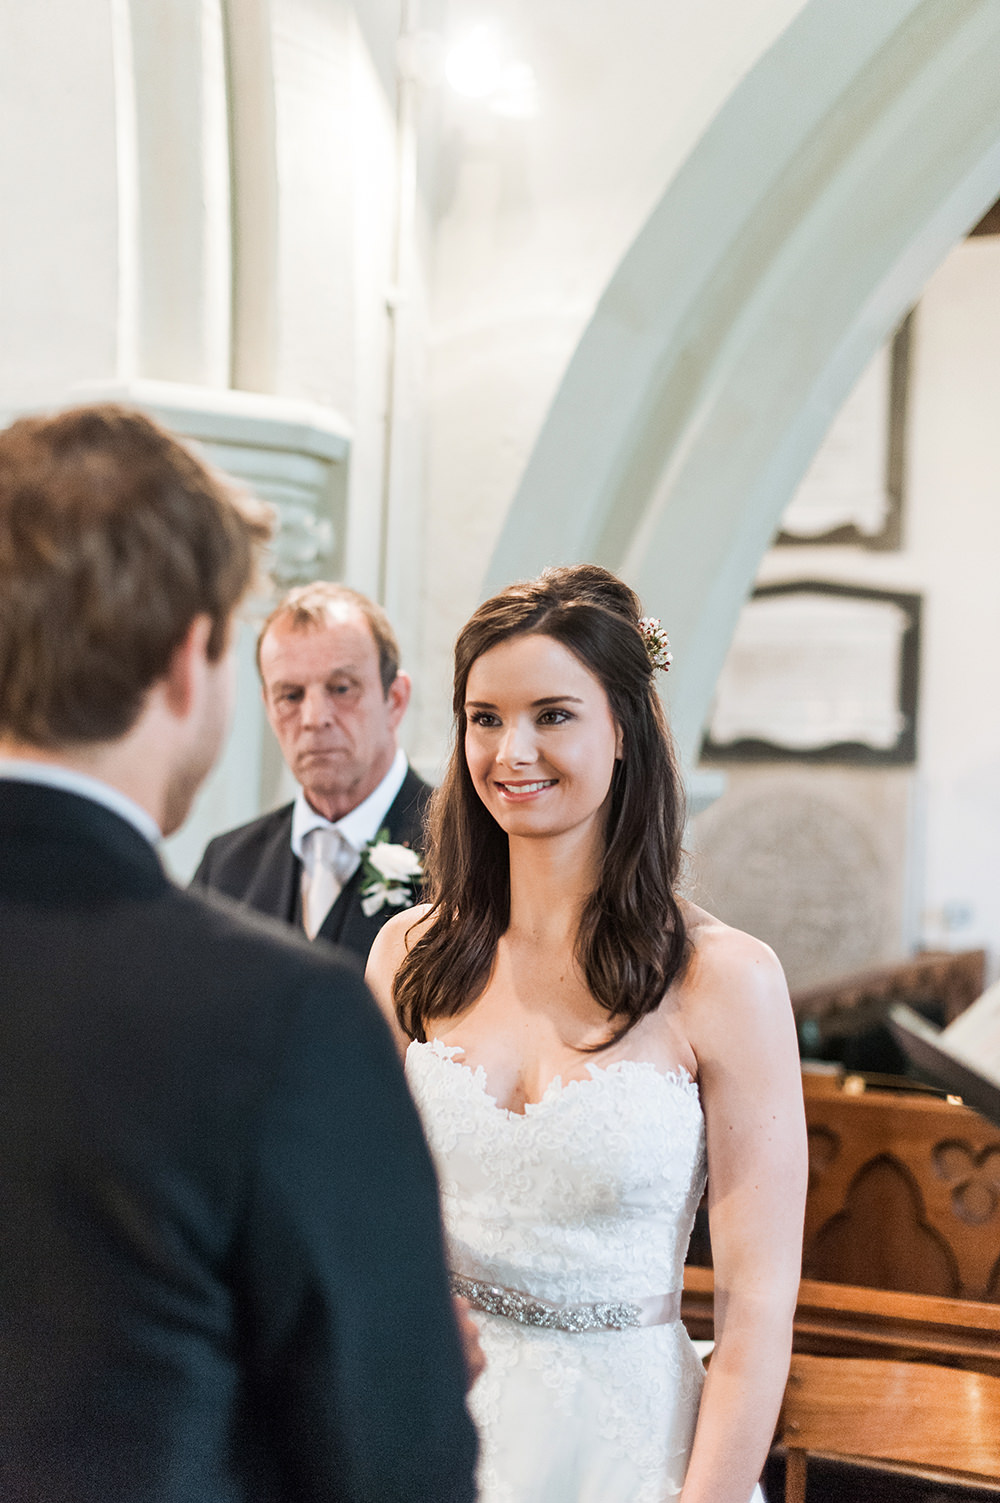 Edmondsham House Wedding Darima Frampton Photography